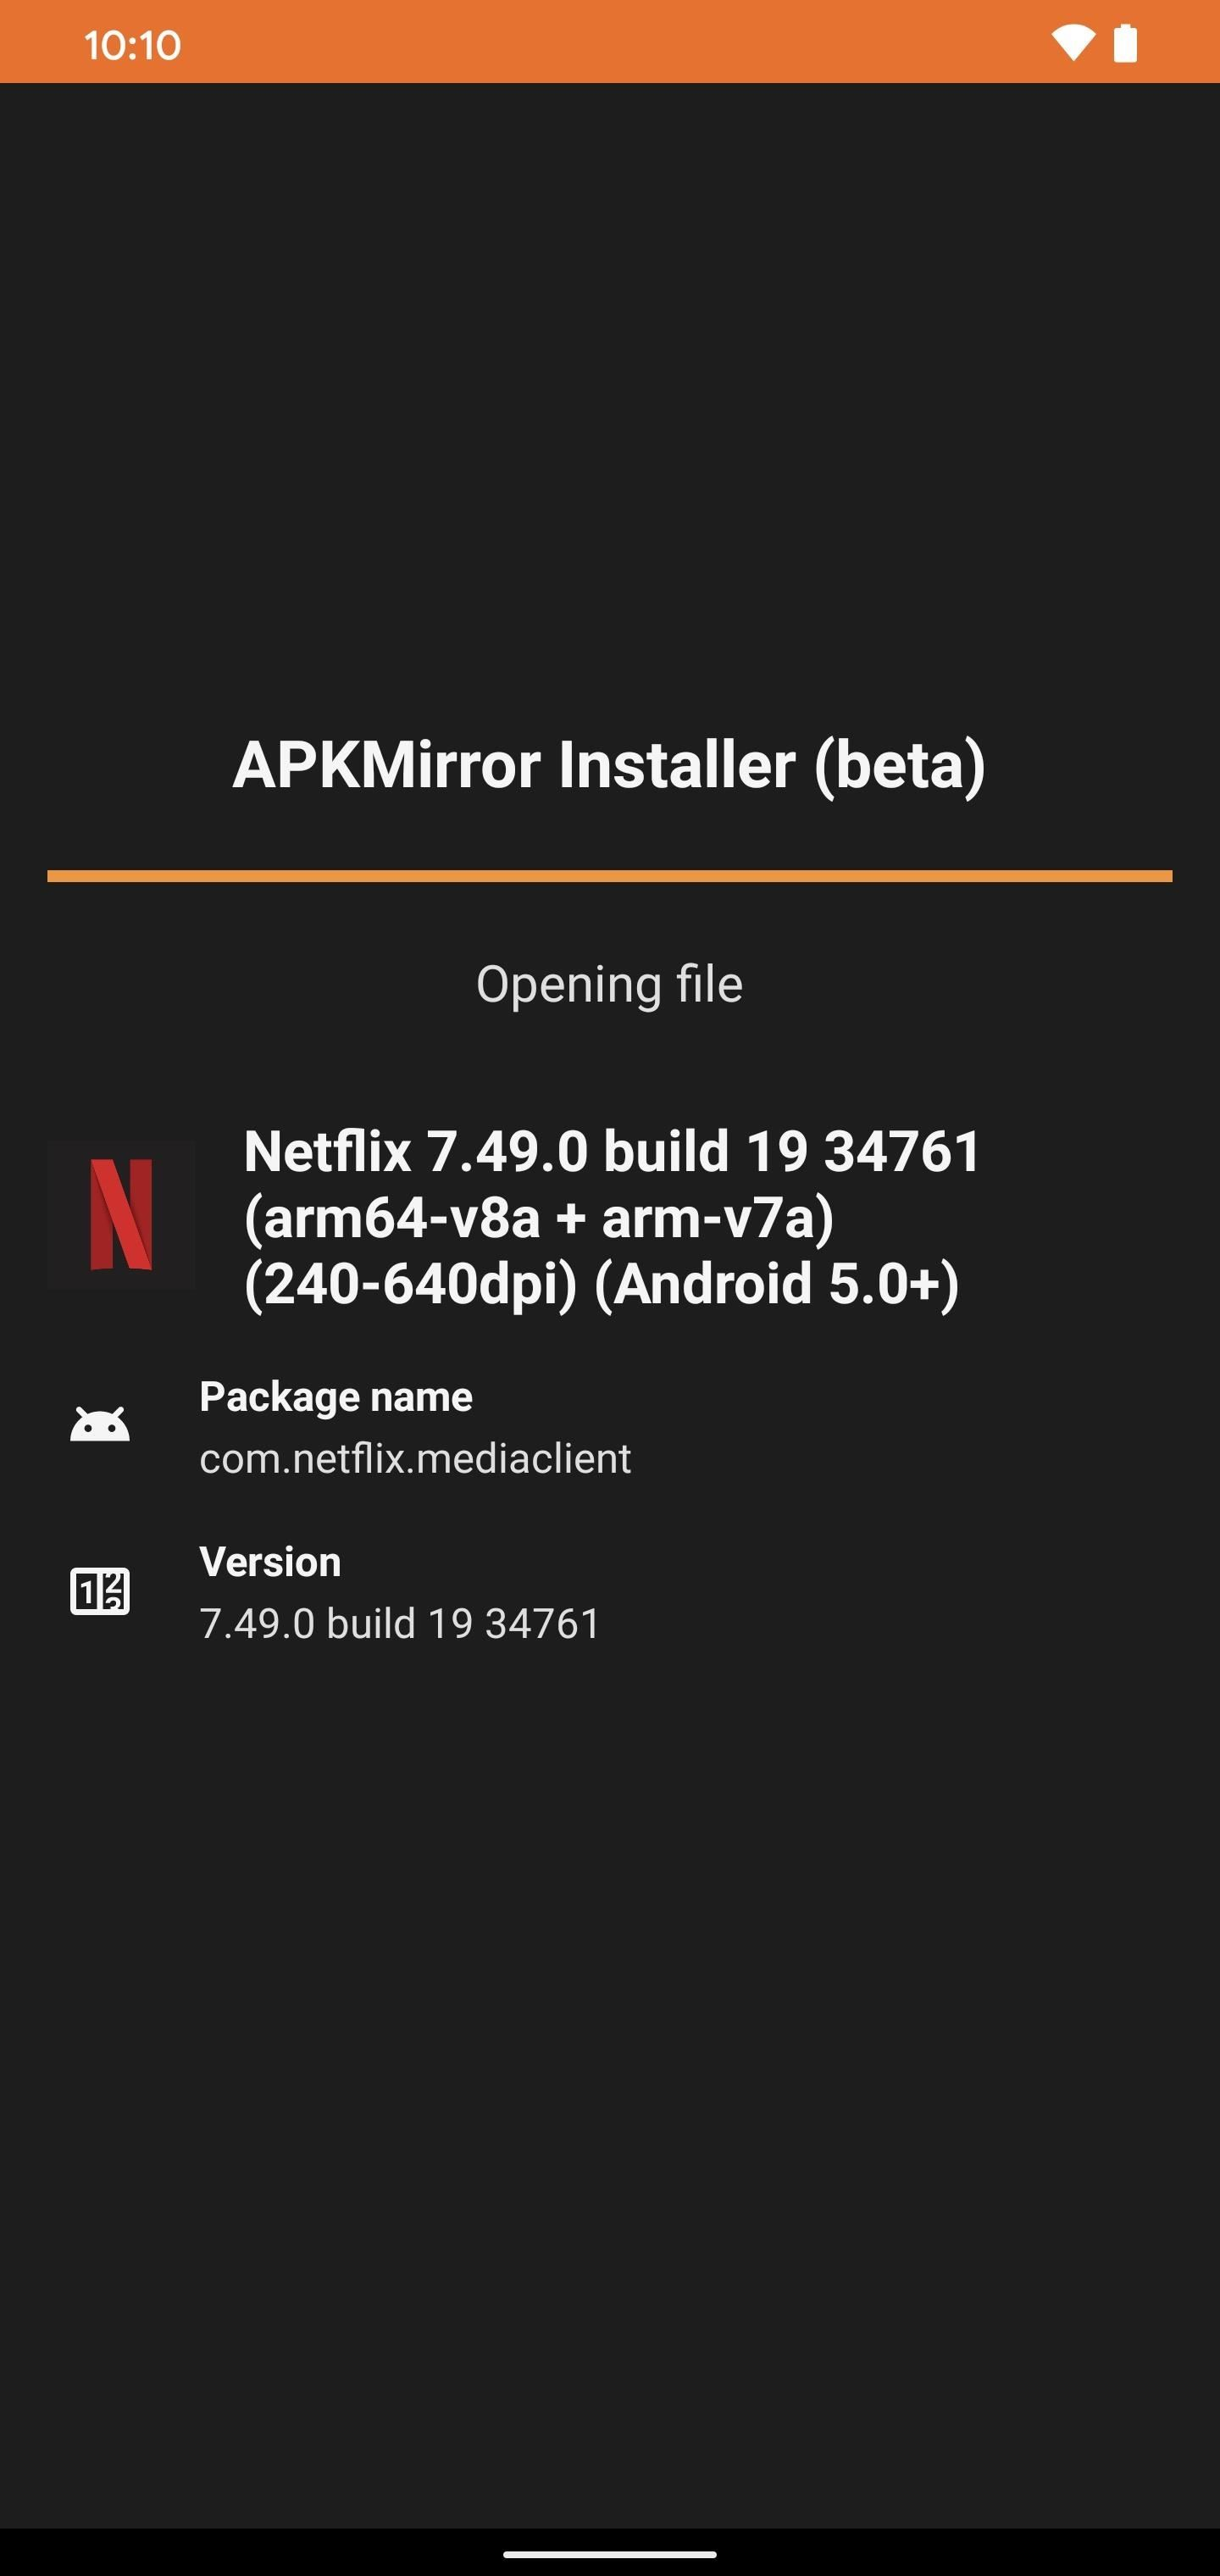 Netflix Missing on Android? Here's How to Sideload the App